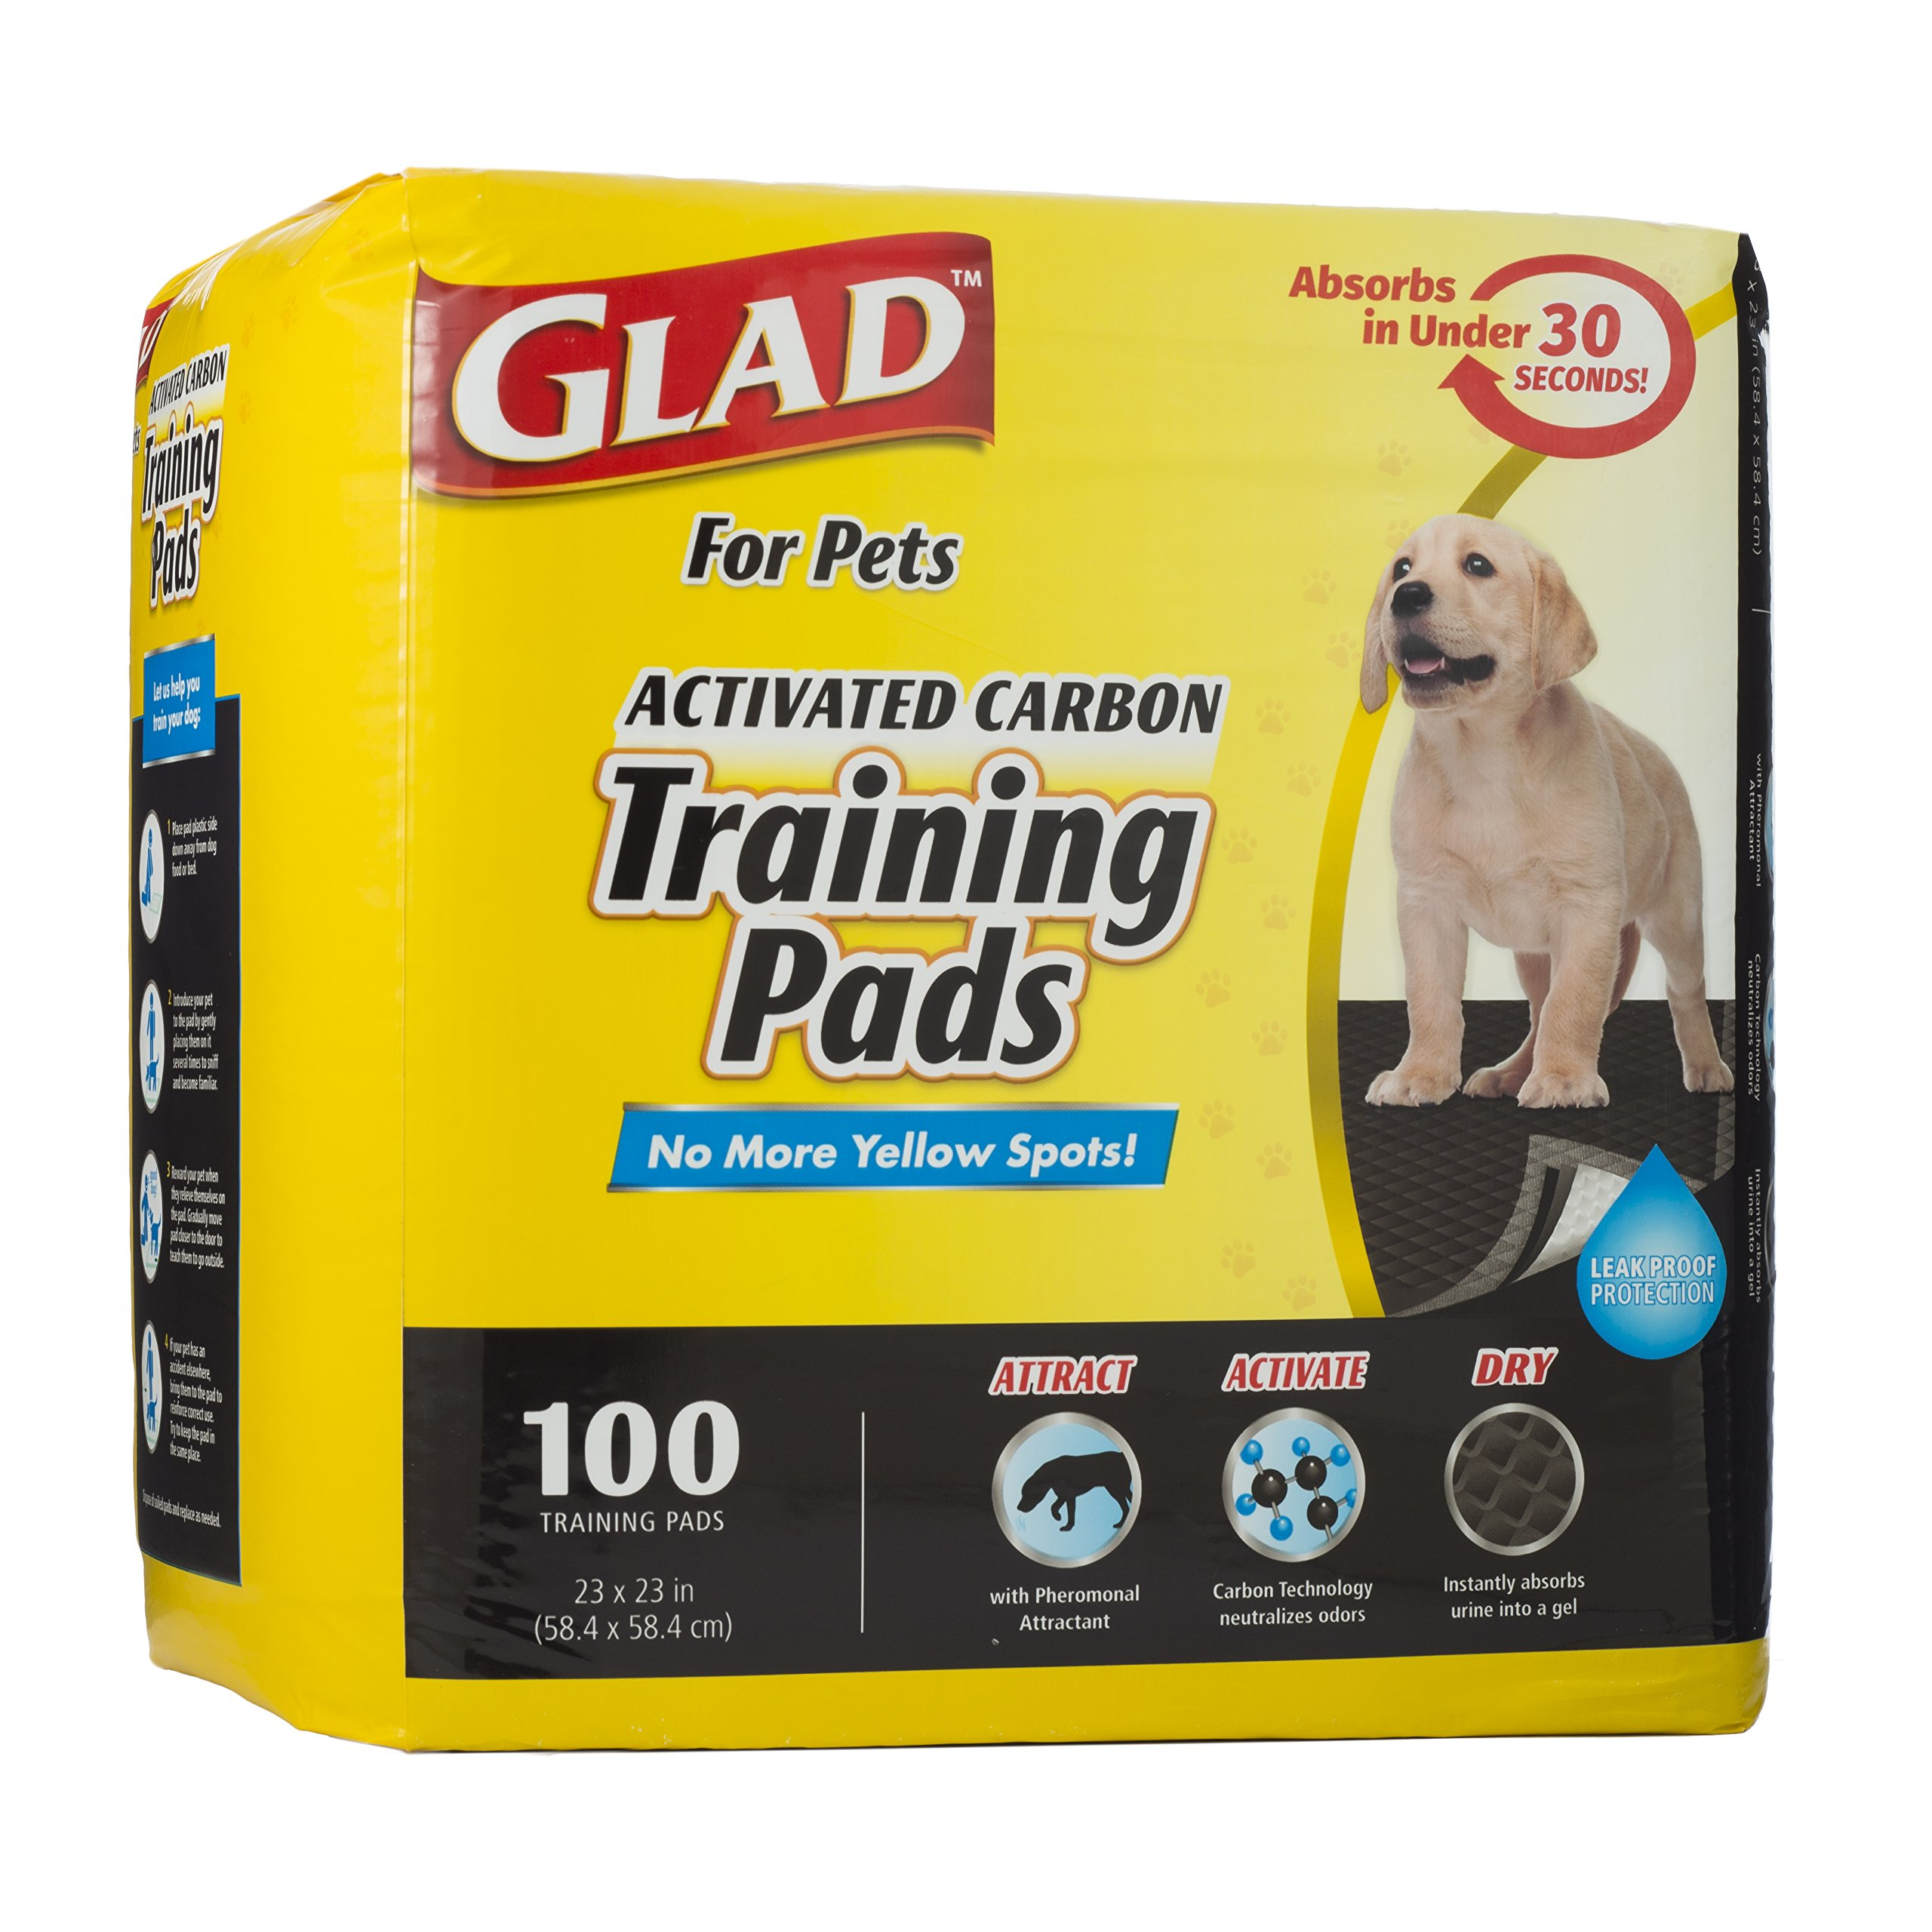 Glad Pets Charcoal NEUTRALIZE Instantly